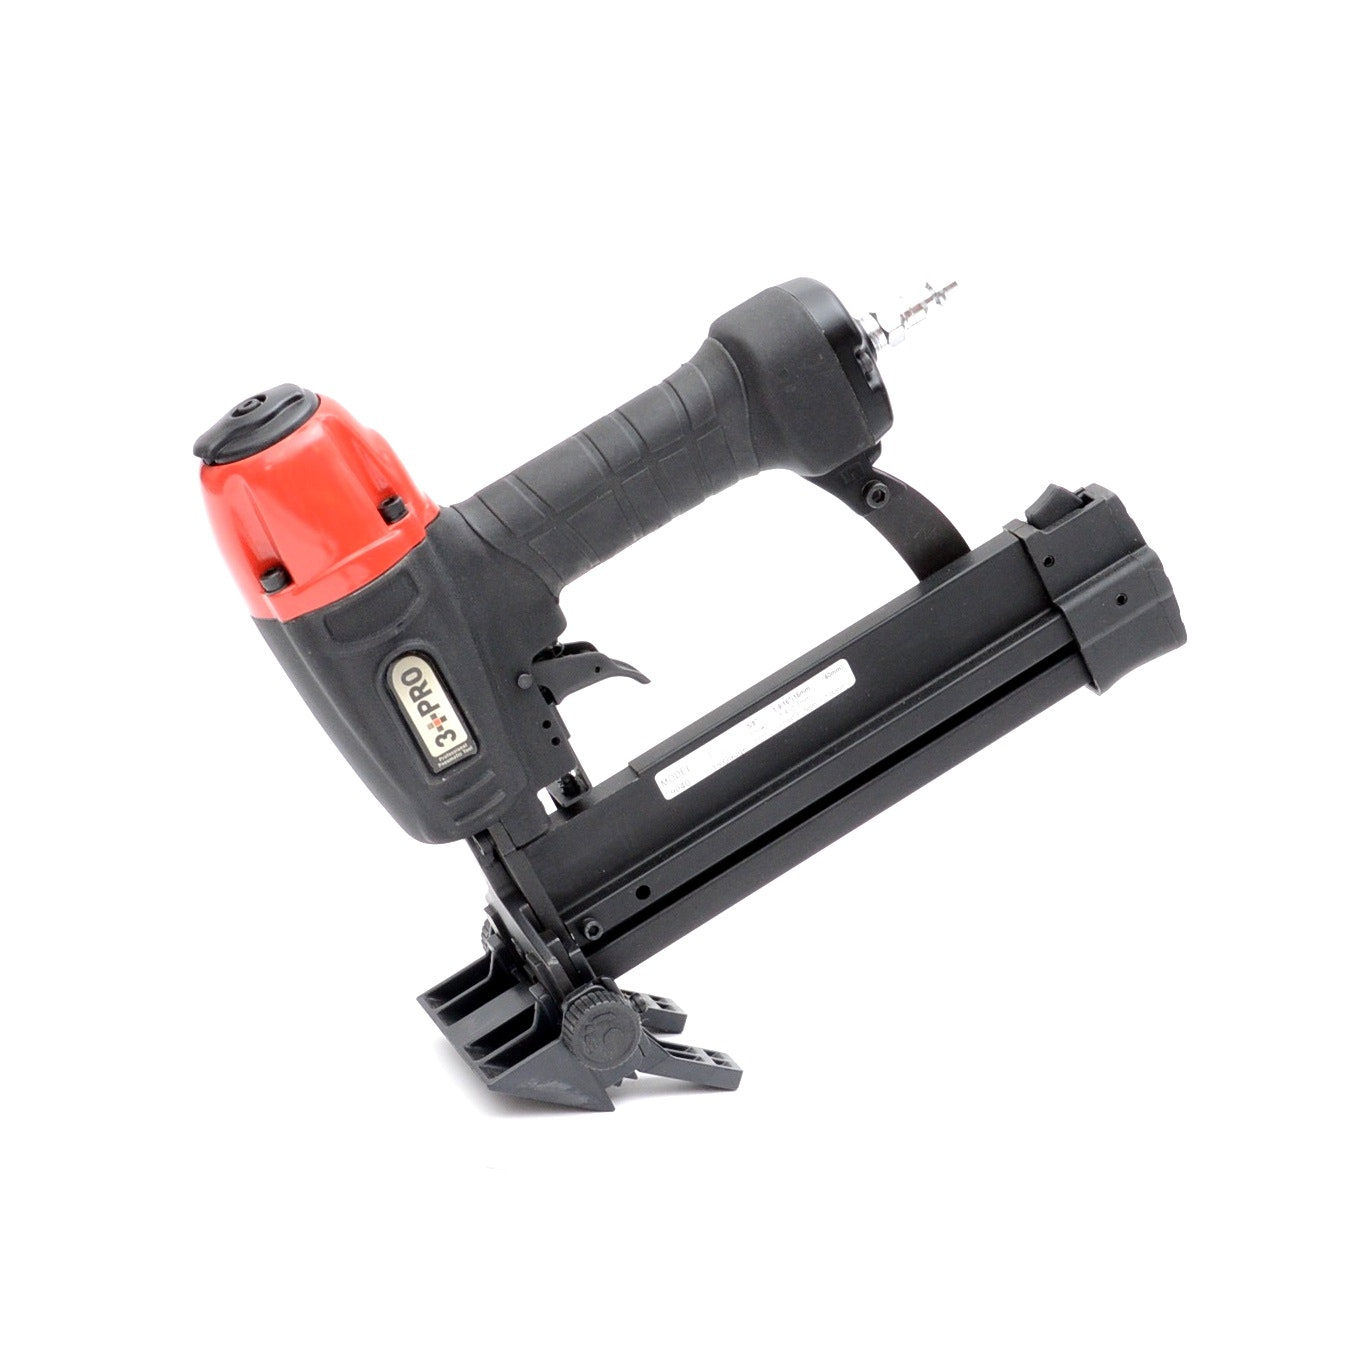 3 PRO 18 Gauge Medium Flooring Stapler